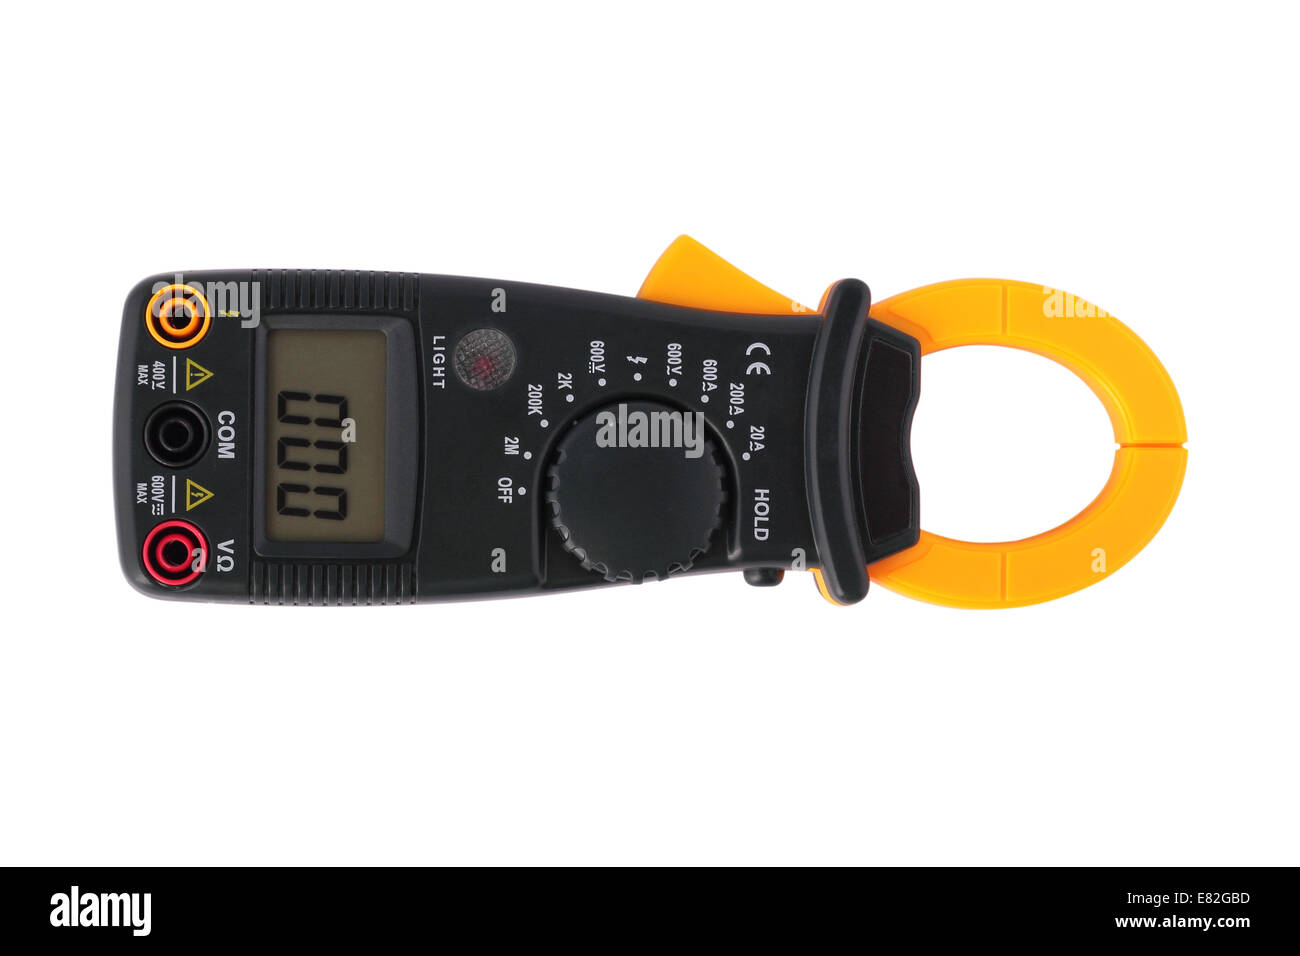 Digital clamp multimeter on a white background. It is isolated, the worker of paths is present. - Stock Image